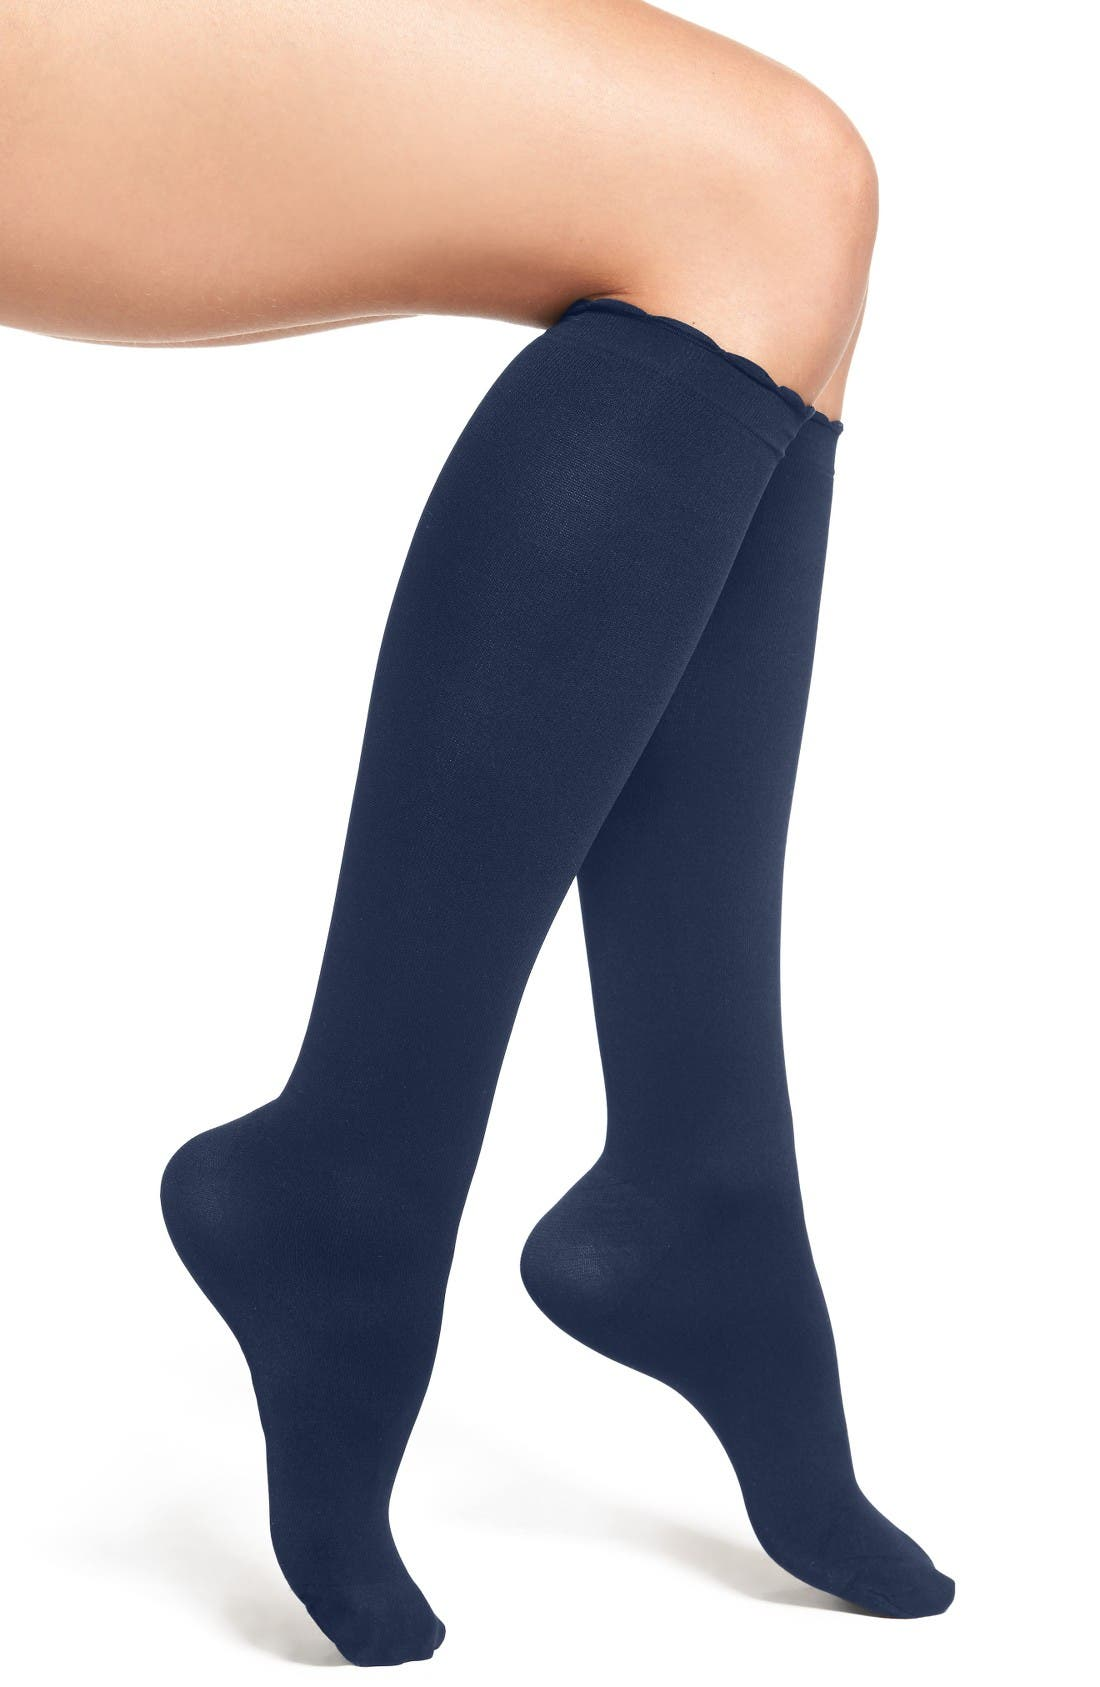 NORDSTROM Compression Trouser Socks, Main, color, NAVY